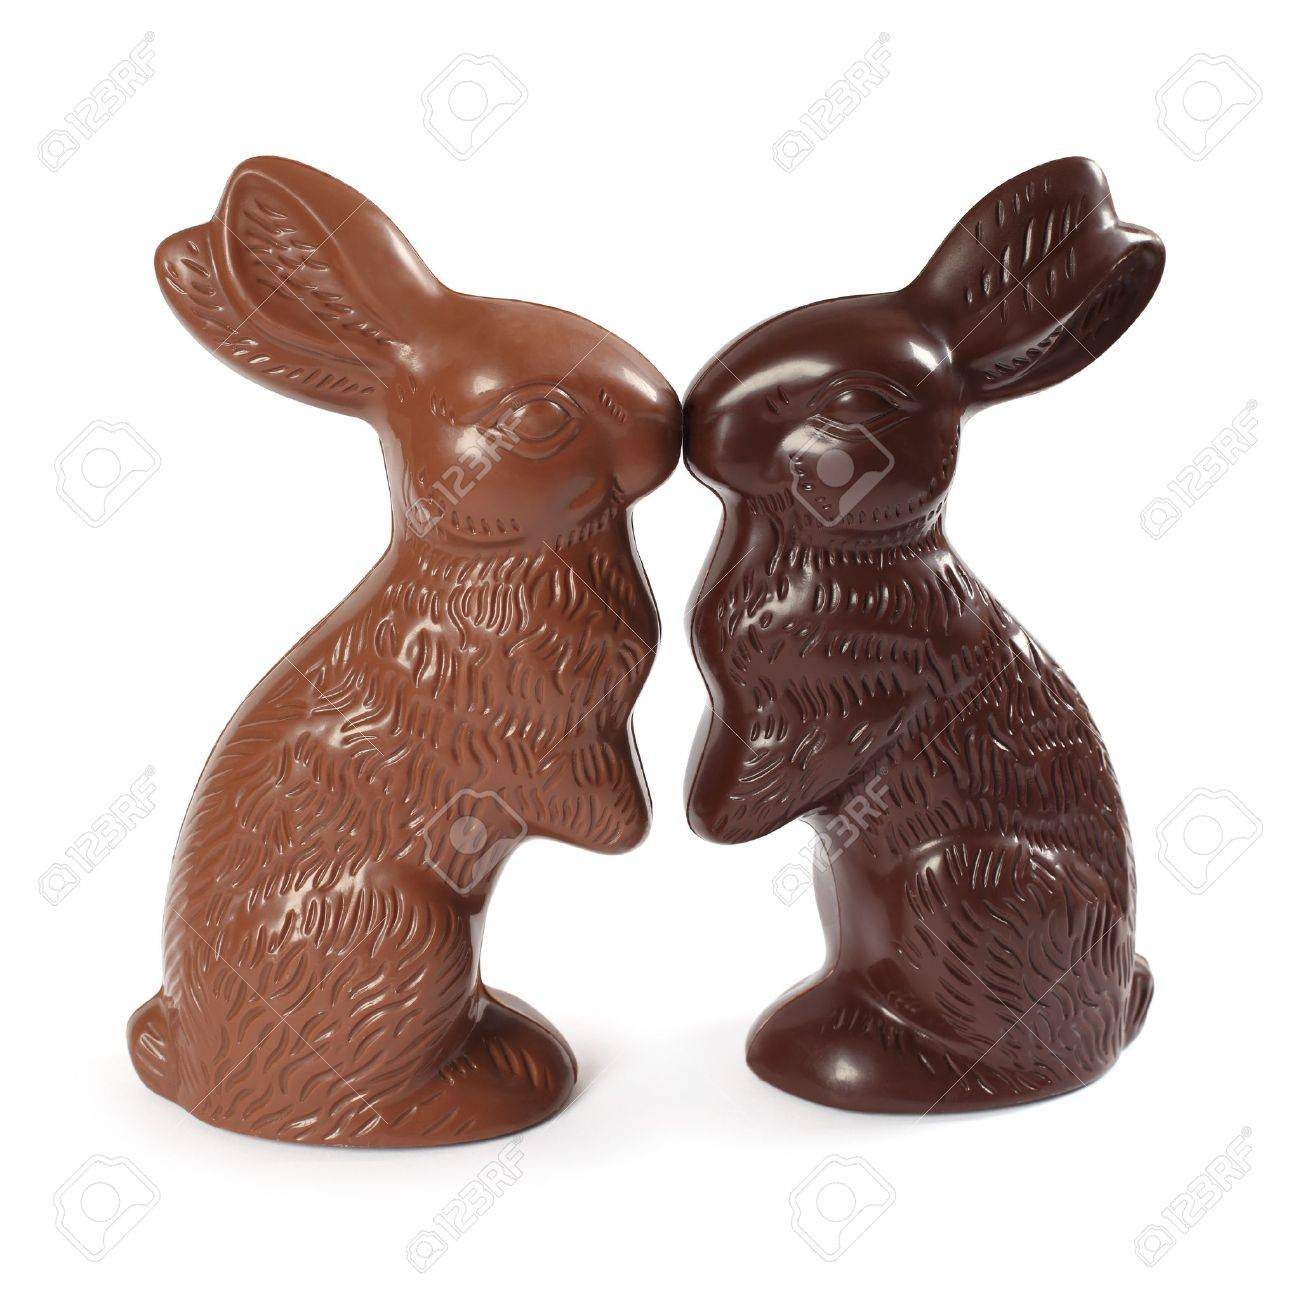 Chocolate Bunny Stock Photos. Royalty Free Chocolate Bunny Images ...